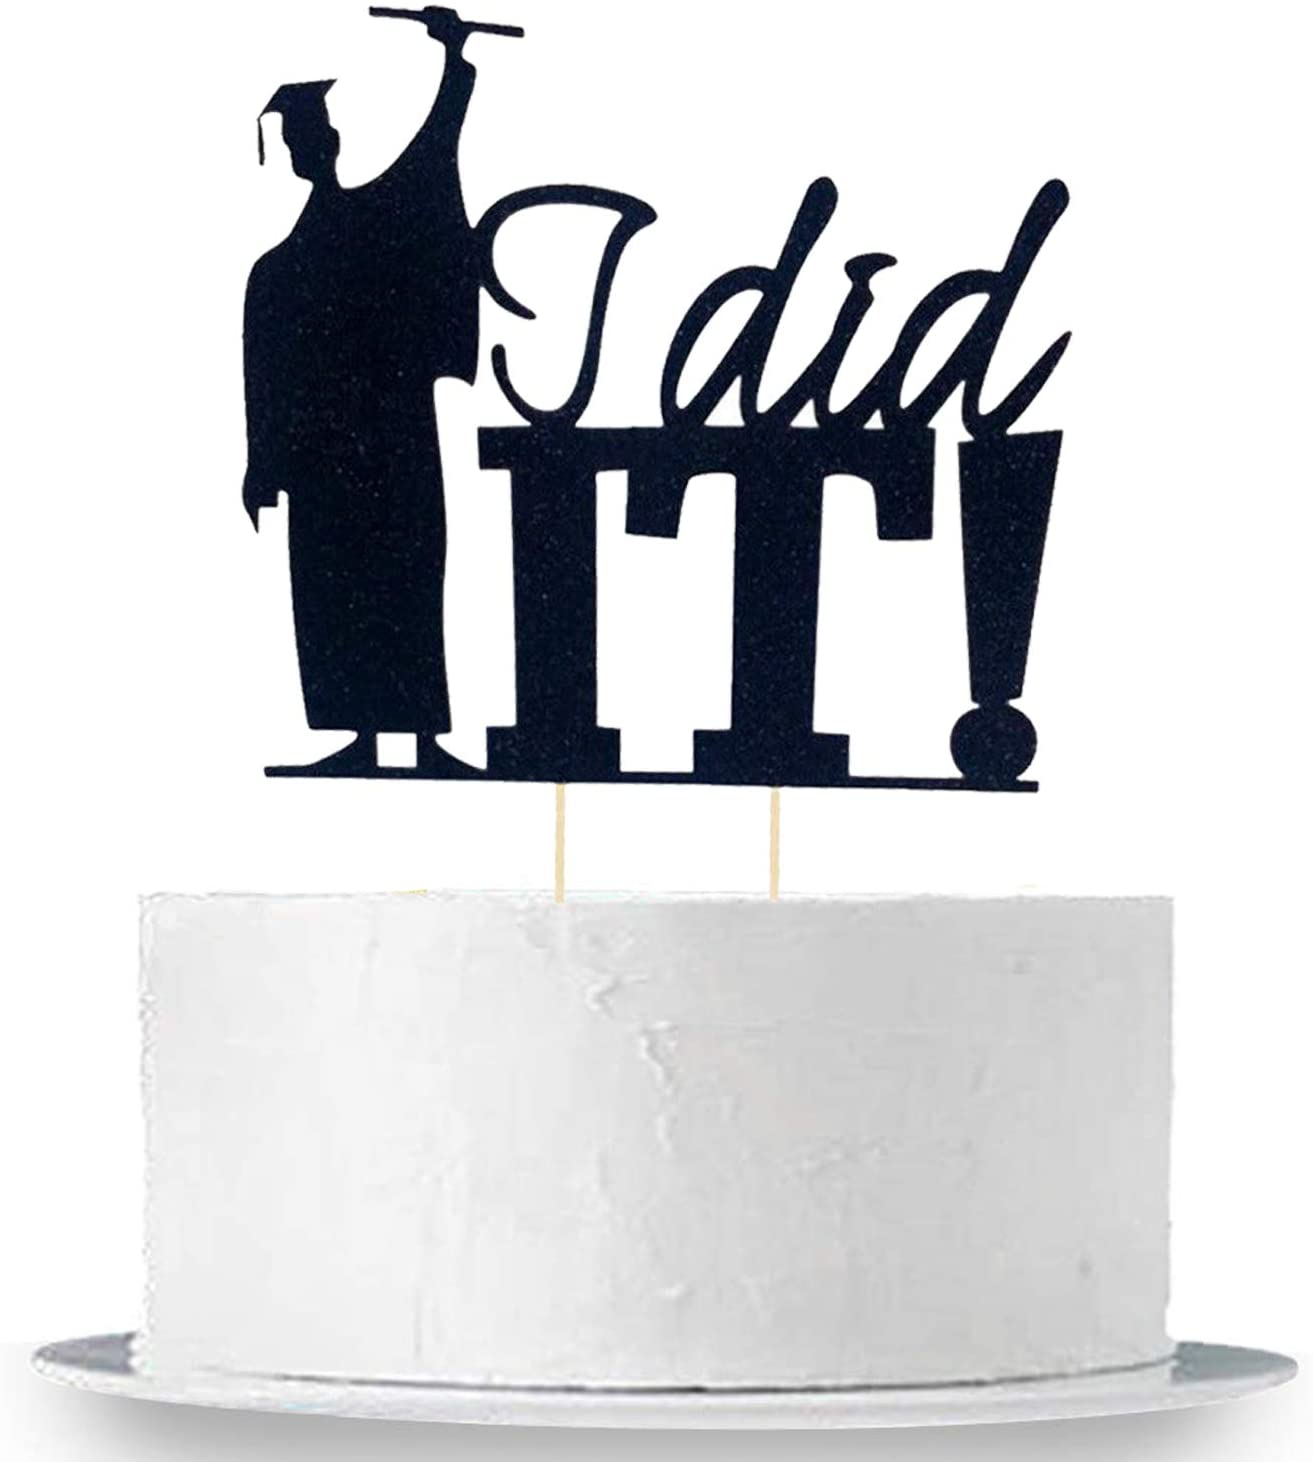 Graduation Cake Topper Decorations - Large Size, I Did It - Grad Holding Degree with Joy of Success | Graduation Cake Toppers 2020 | Graduation Cake Decorations | Party Supplies for Graduation - Black